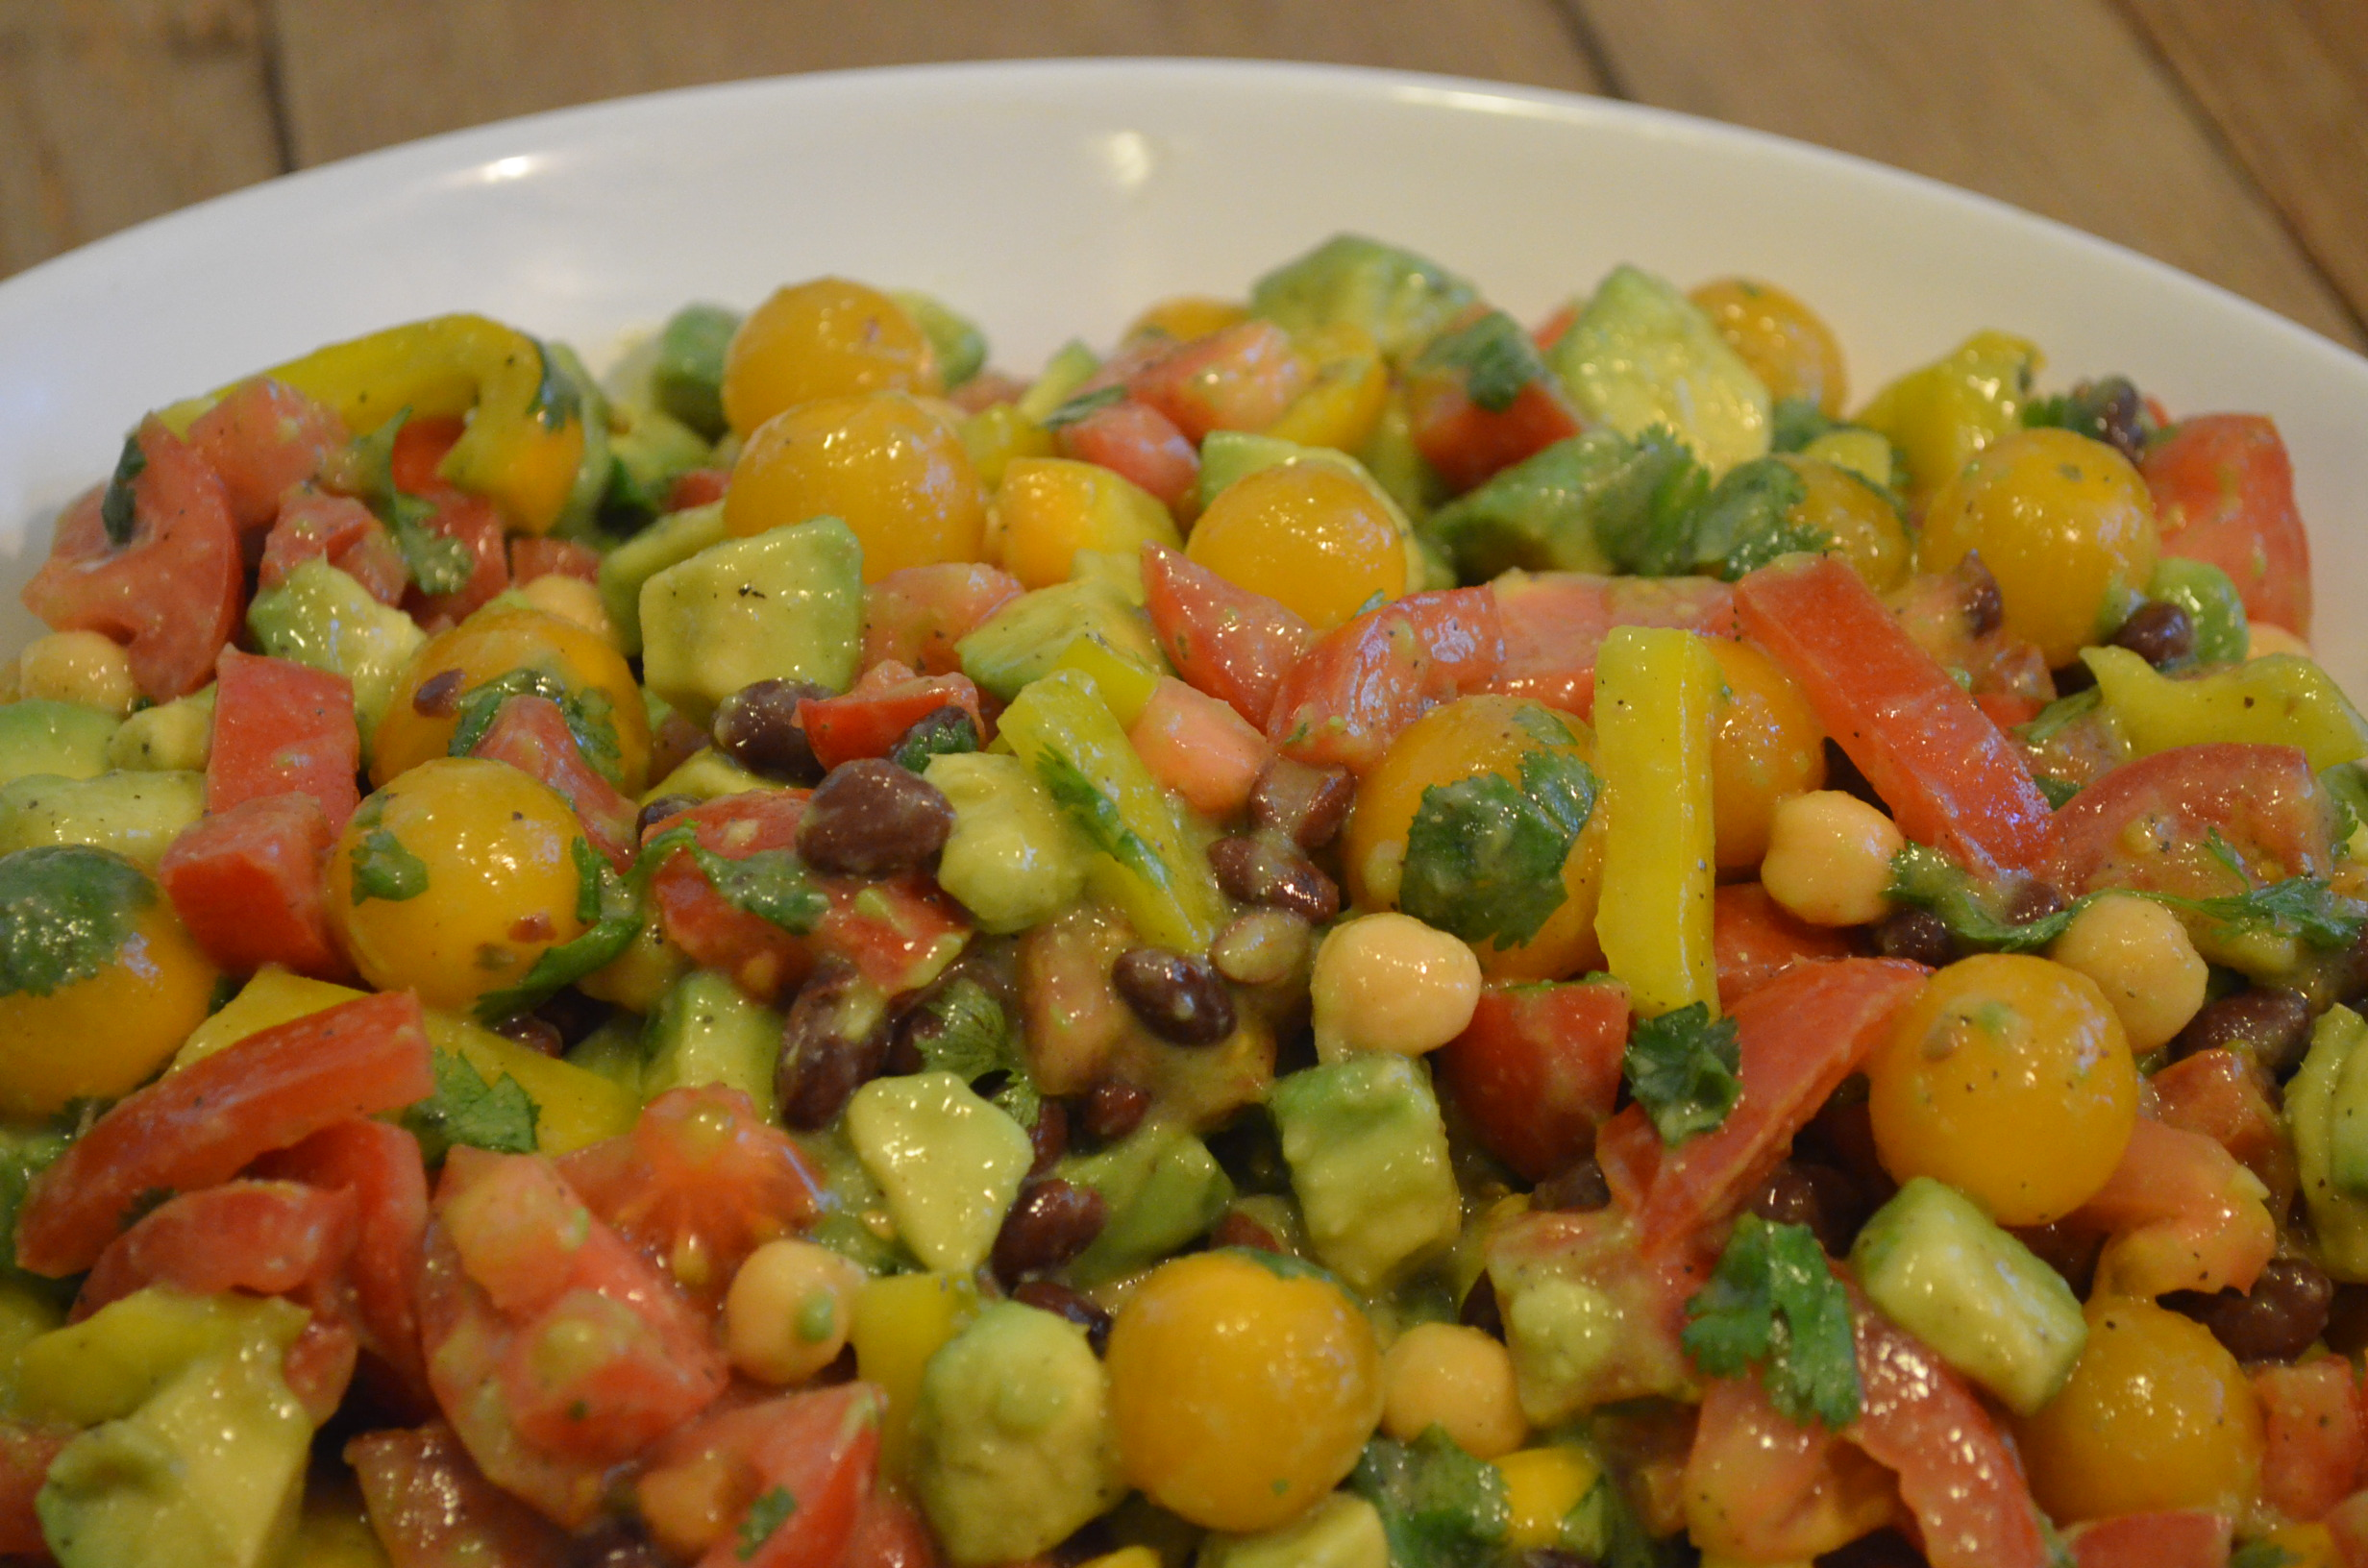 ... variation on my Avocado / Tomato Salad with Cilantro & Lime recipe